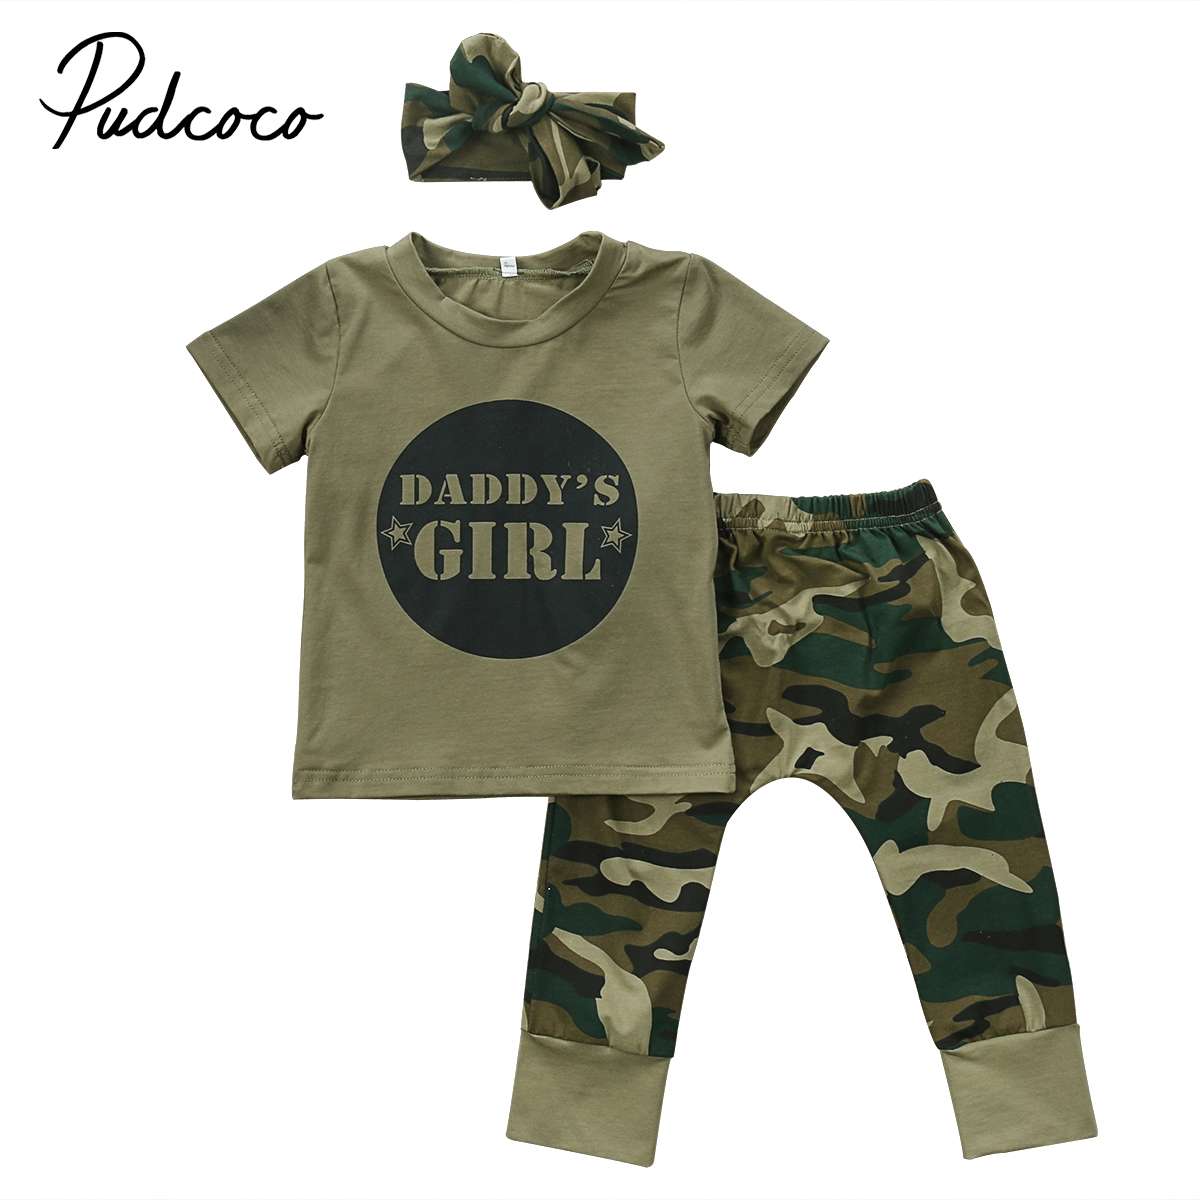 Camouflage Newborn Baby Boys Girls Sets T-shirt Tops+Pants 2Pcs Outfits Set Clothes Casual newborn kids baby boy summer clothes set t shirt tops pants outfits boys sets 2pcs 0 3y camouflage